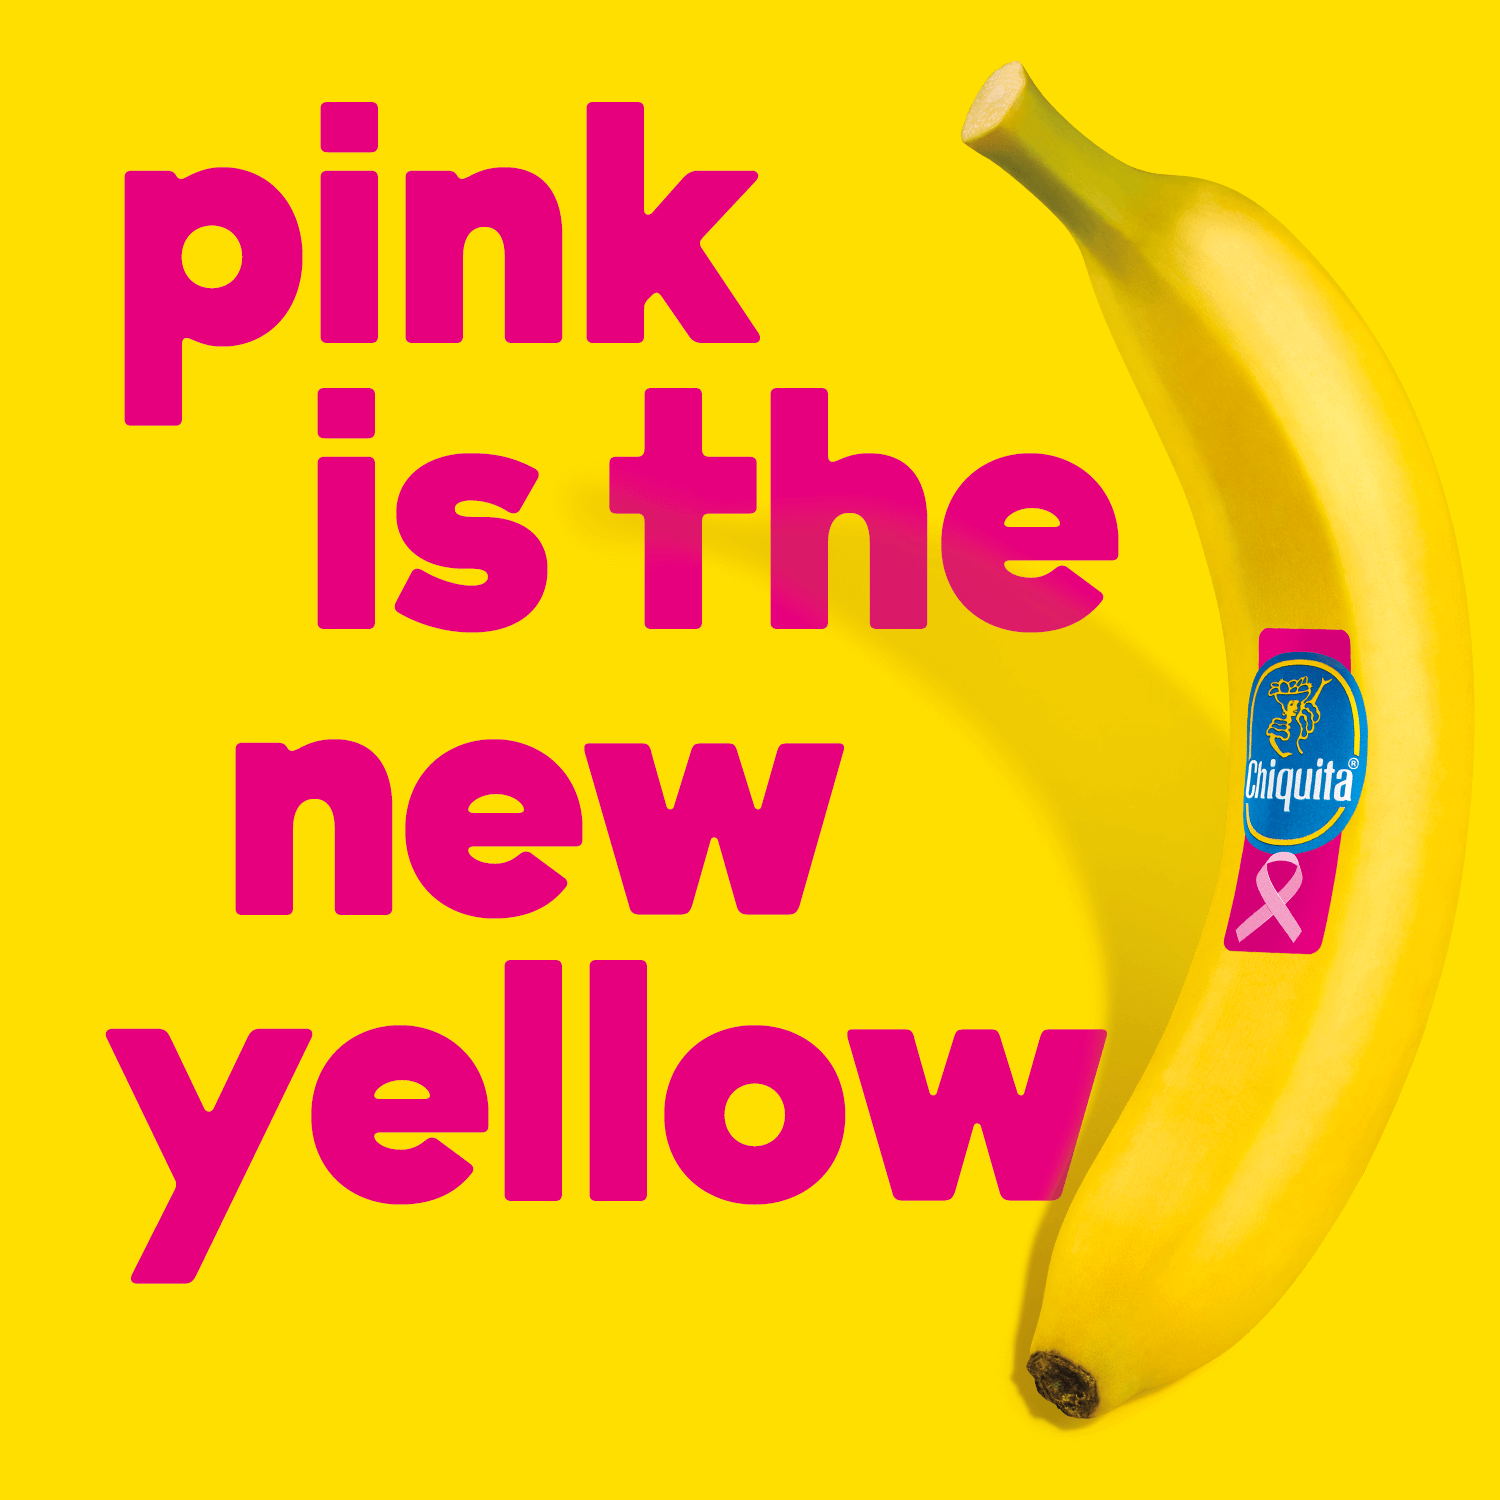 Pink is the new yellow